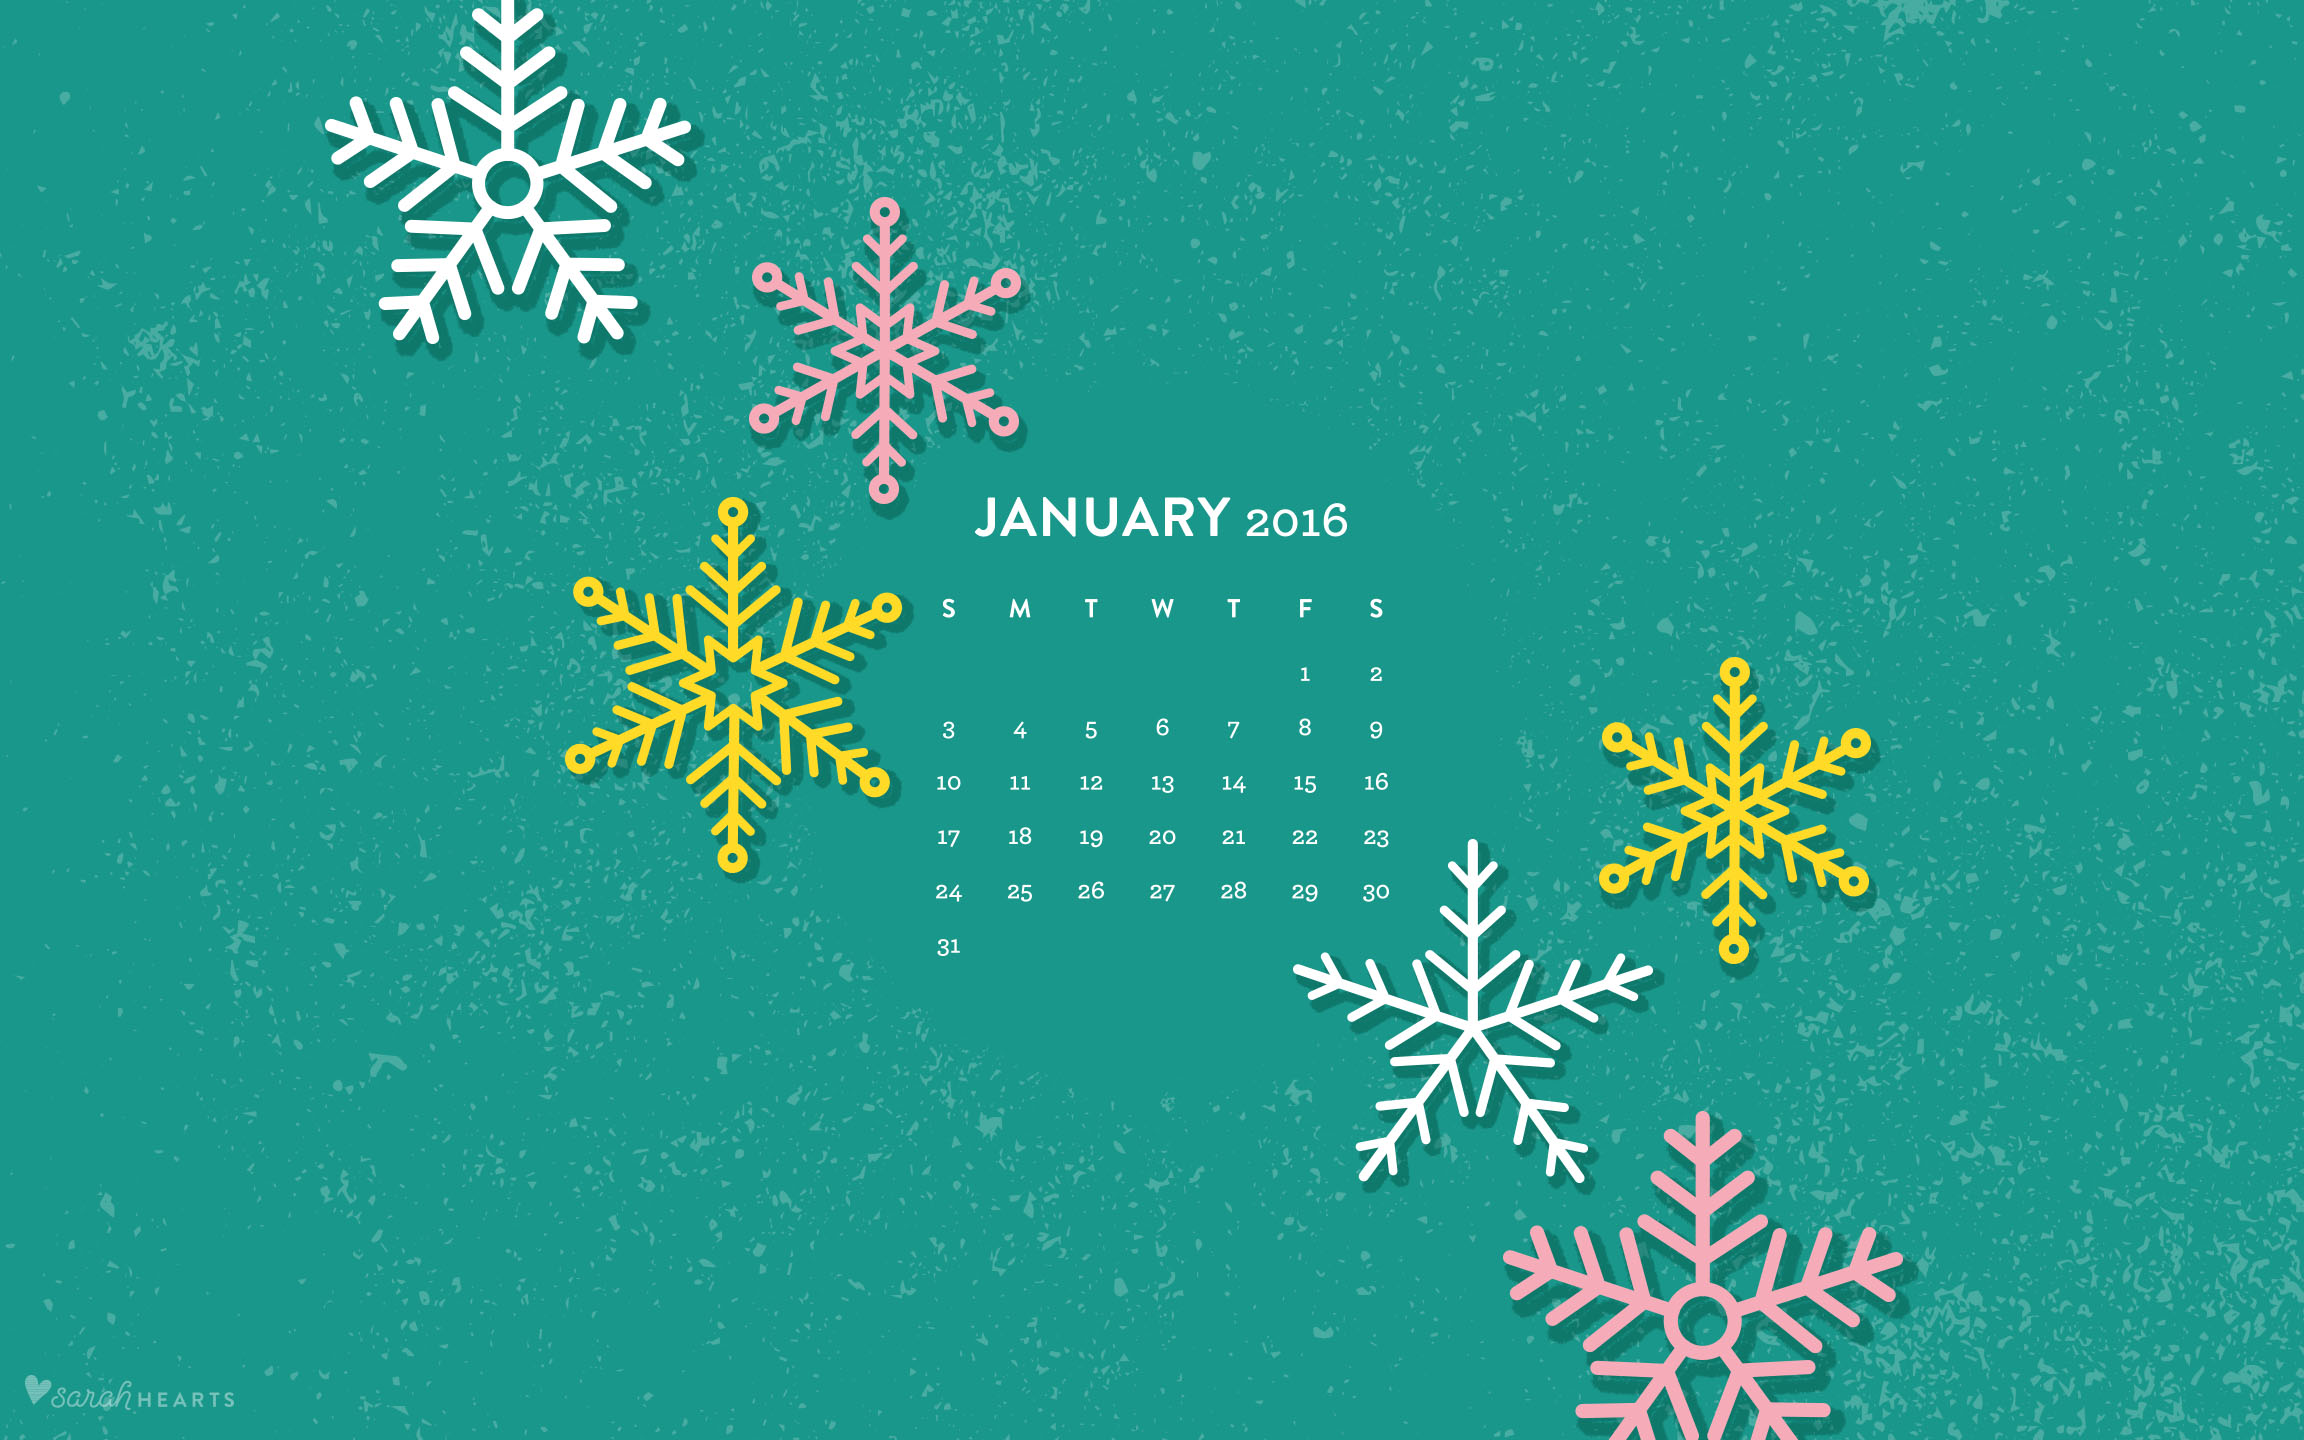 Calendar Background 2016 : January calendar wallpaper sarah hearts